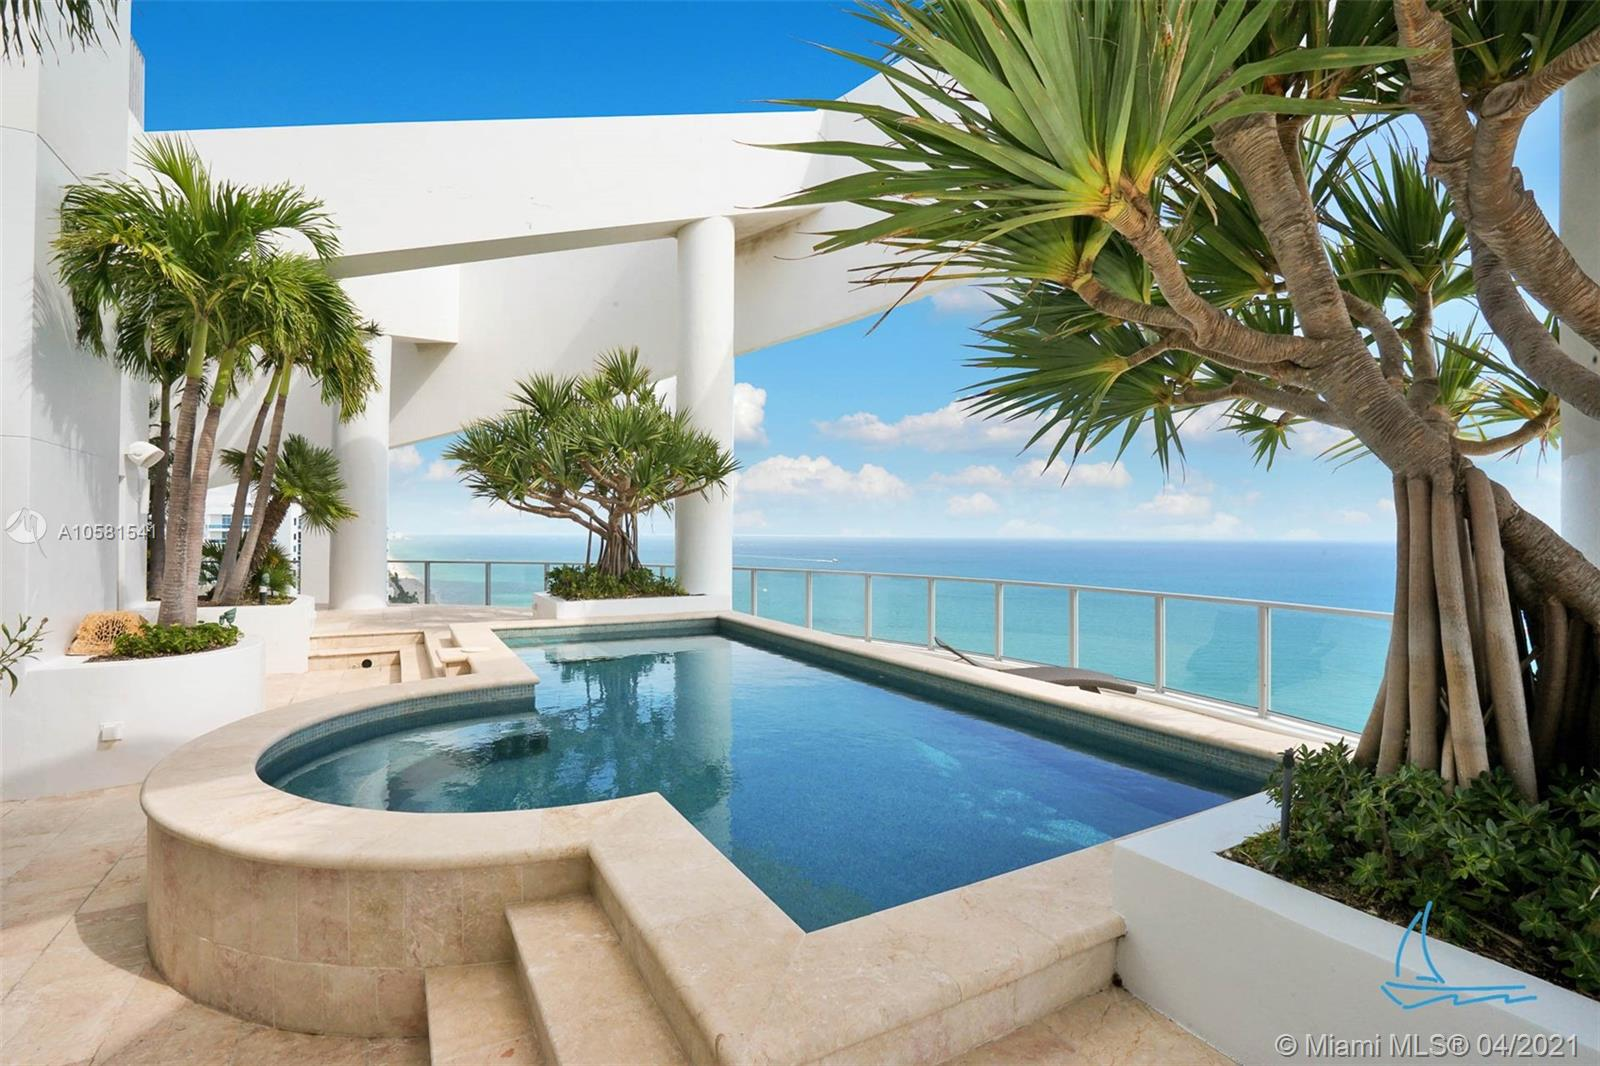 This rare and significant 3 floor PH will take your breath away. Enter through a private elevator to a grand view of the ocean adorned with a beautiful Chihuly Chandelier and an indoor waterfall spanning 2 floors in height. The countertops and design of this mansion in the sky have been  conceptualized and brought to life bringing South Floridas natural beauty of the ocean indoors. Other features of this gorgeous 5 bedroom residence include an in-home, personal, elevator to take you to the 3rd floor where you are enchanted by your own landscaped and light designed terrace with a pool, jacuzzi, and irrigation system. Outside of this gracious living space is your own private beach cabana, 11 parking spots with built-out building entrance, gym, spa, and onsite restaurant.